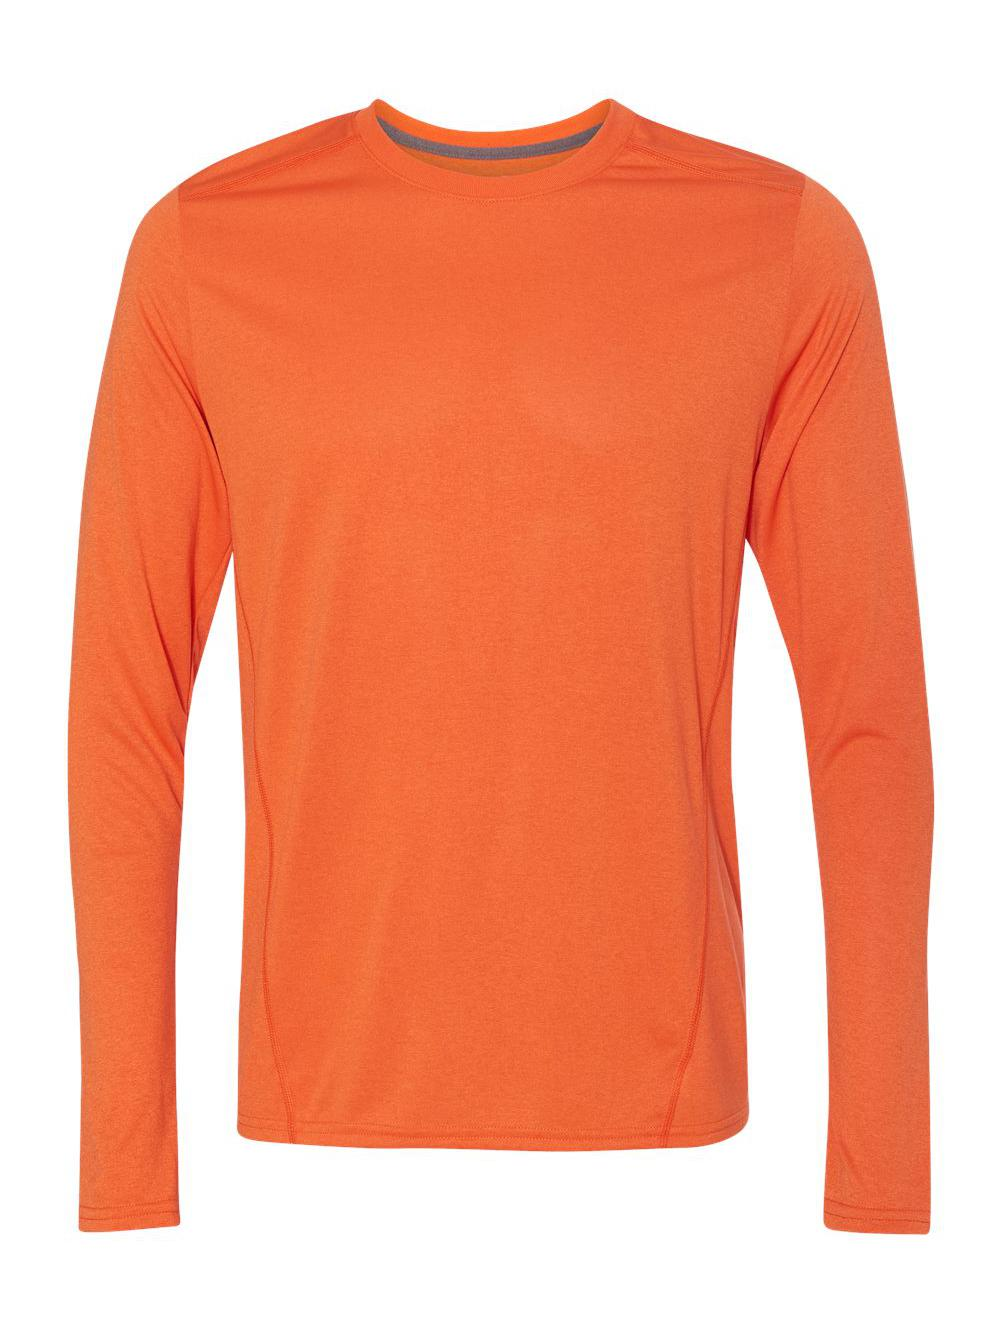 Gildan-Tech-Performance-Long-Sleeve-T-Shirt-47400 thumbnail 15